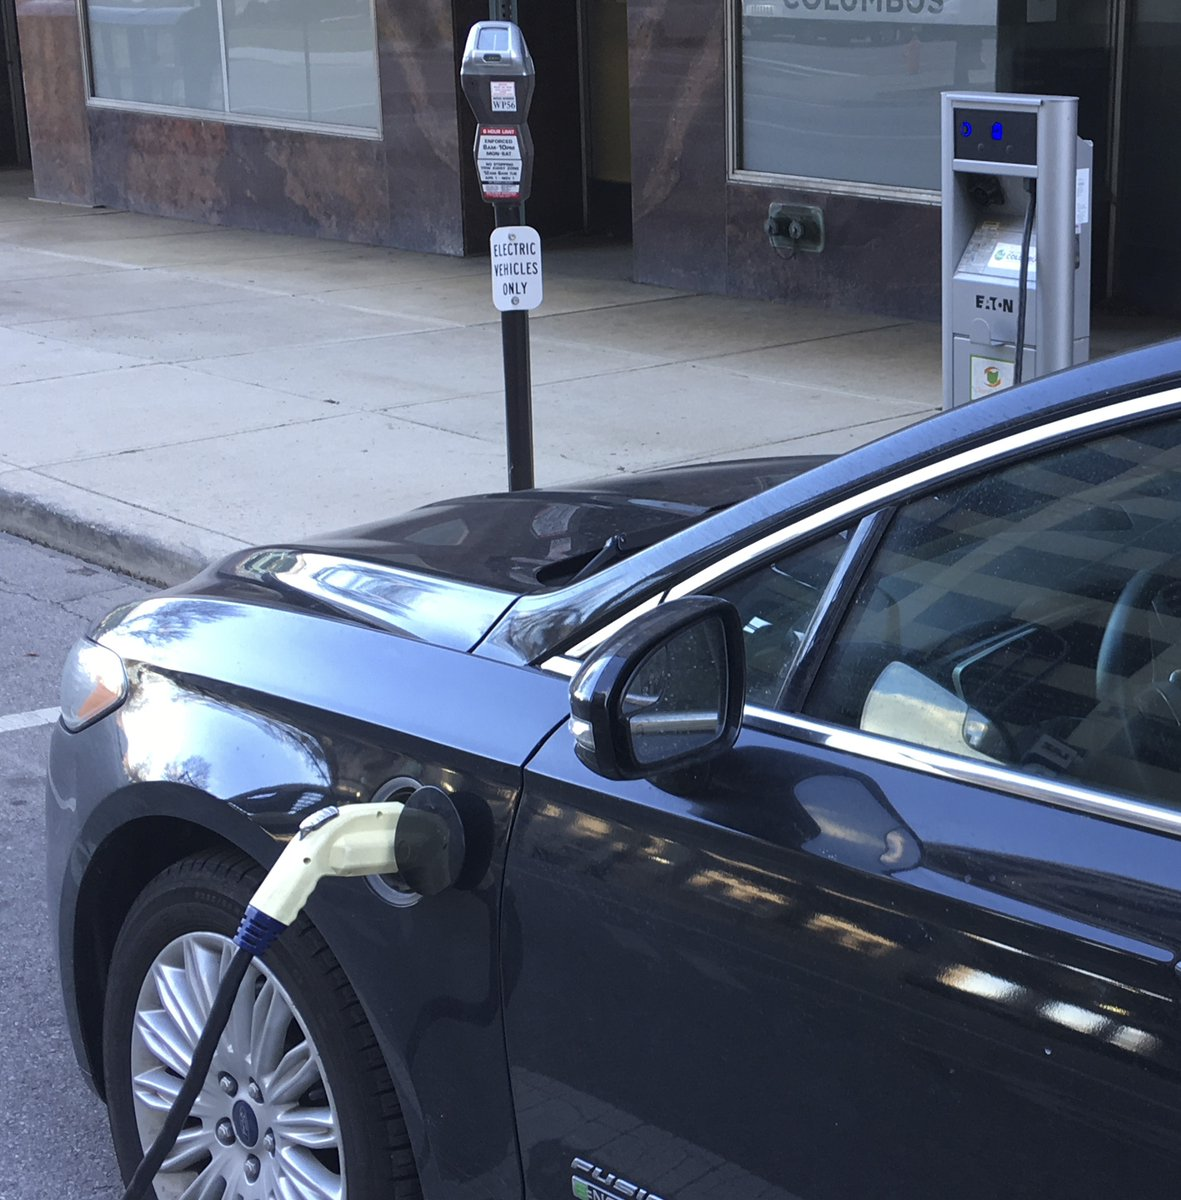 More chargers for electric cars coming to central Ohio